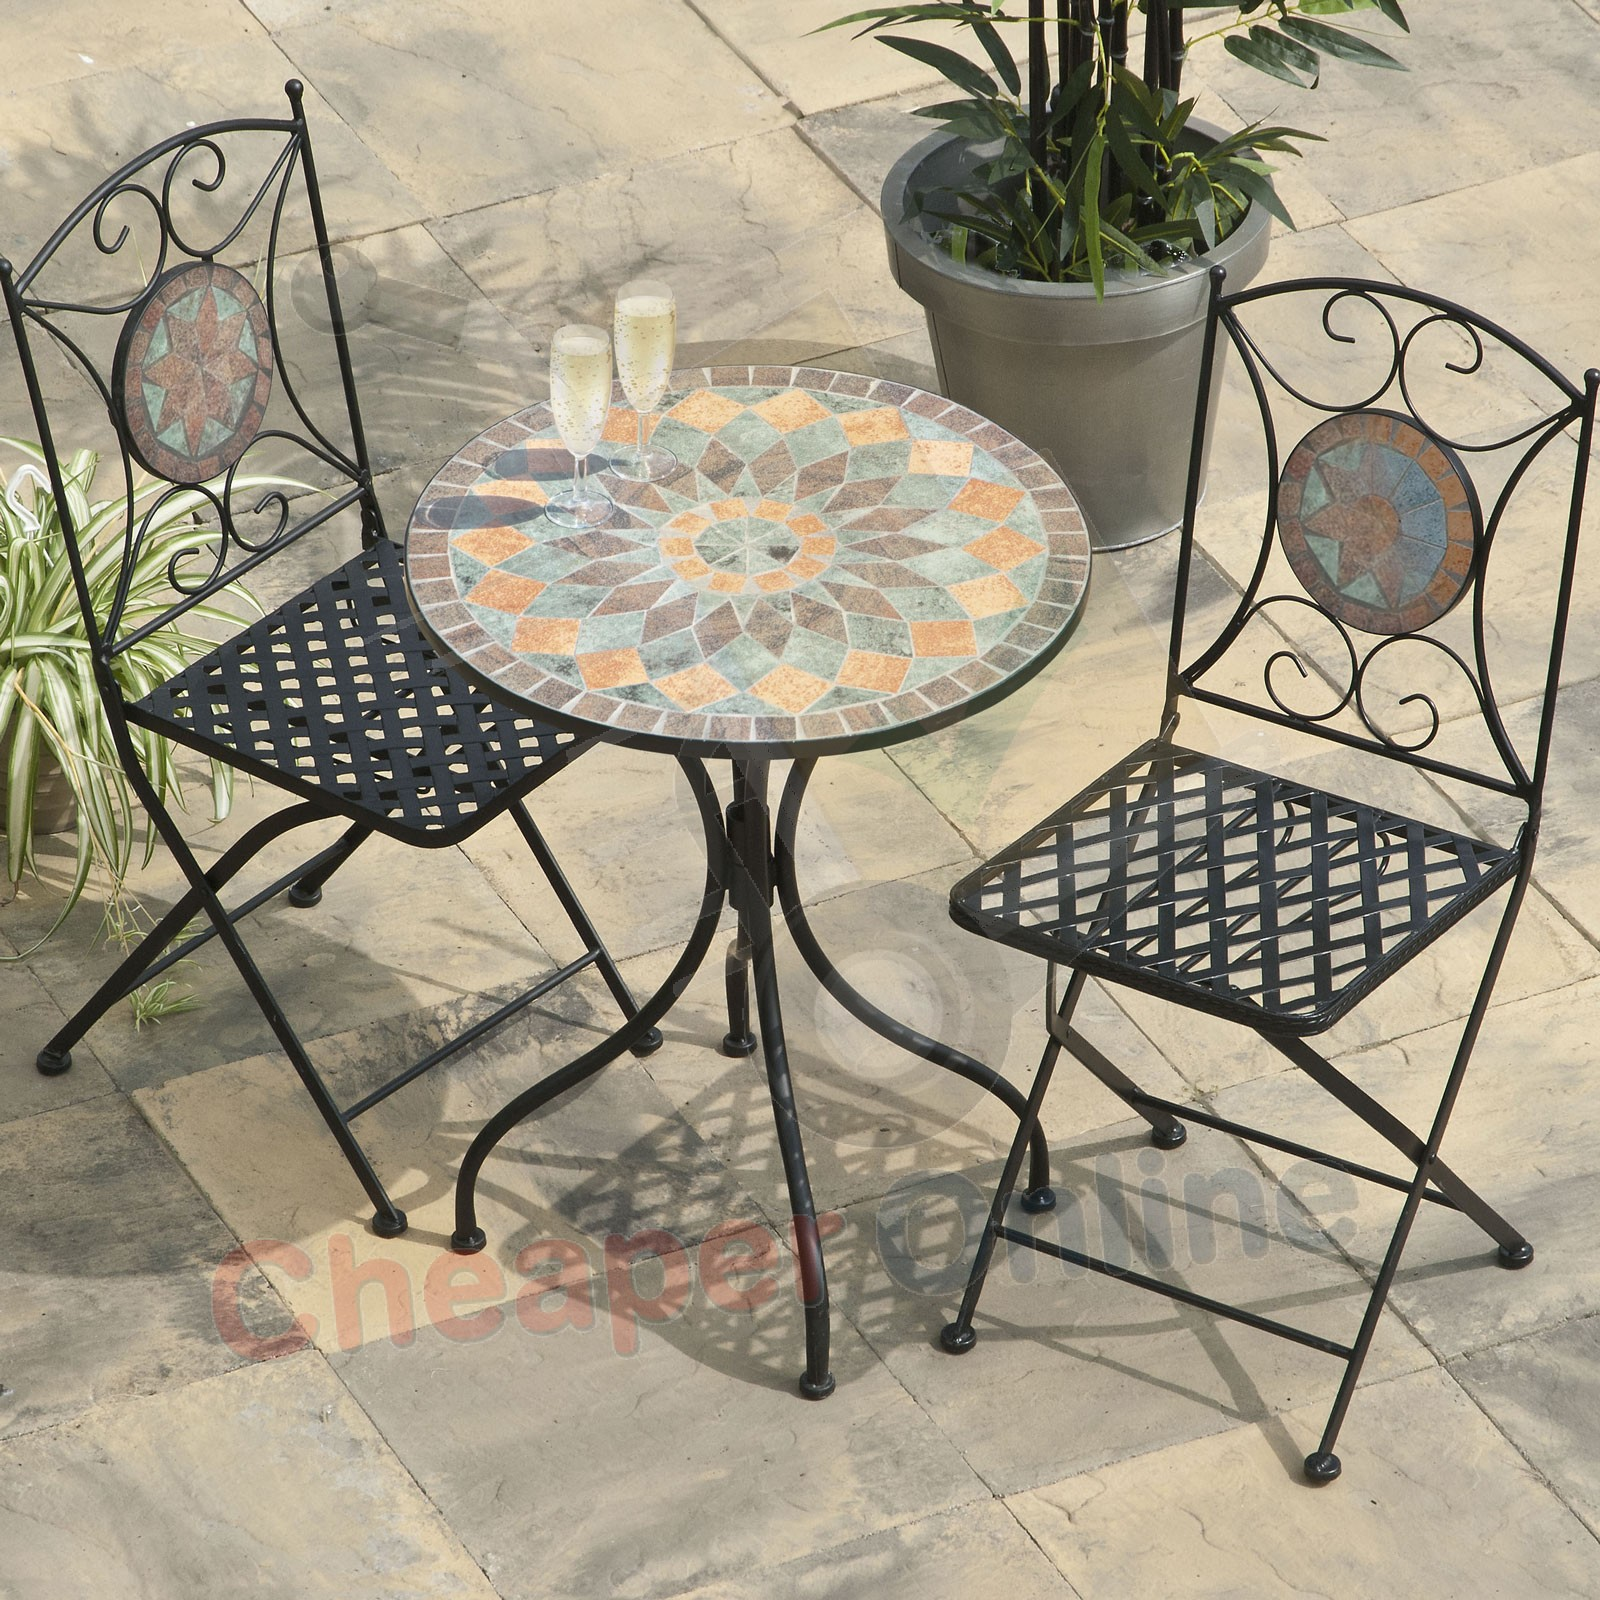 decorating mosaic table art bistro ceramic tile mosaictable set outdoor side how full size white nightstand lamps mirrored end target accents console height round lamp tables for